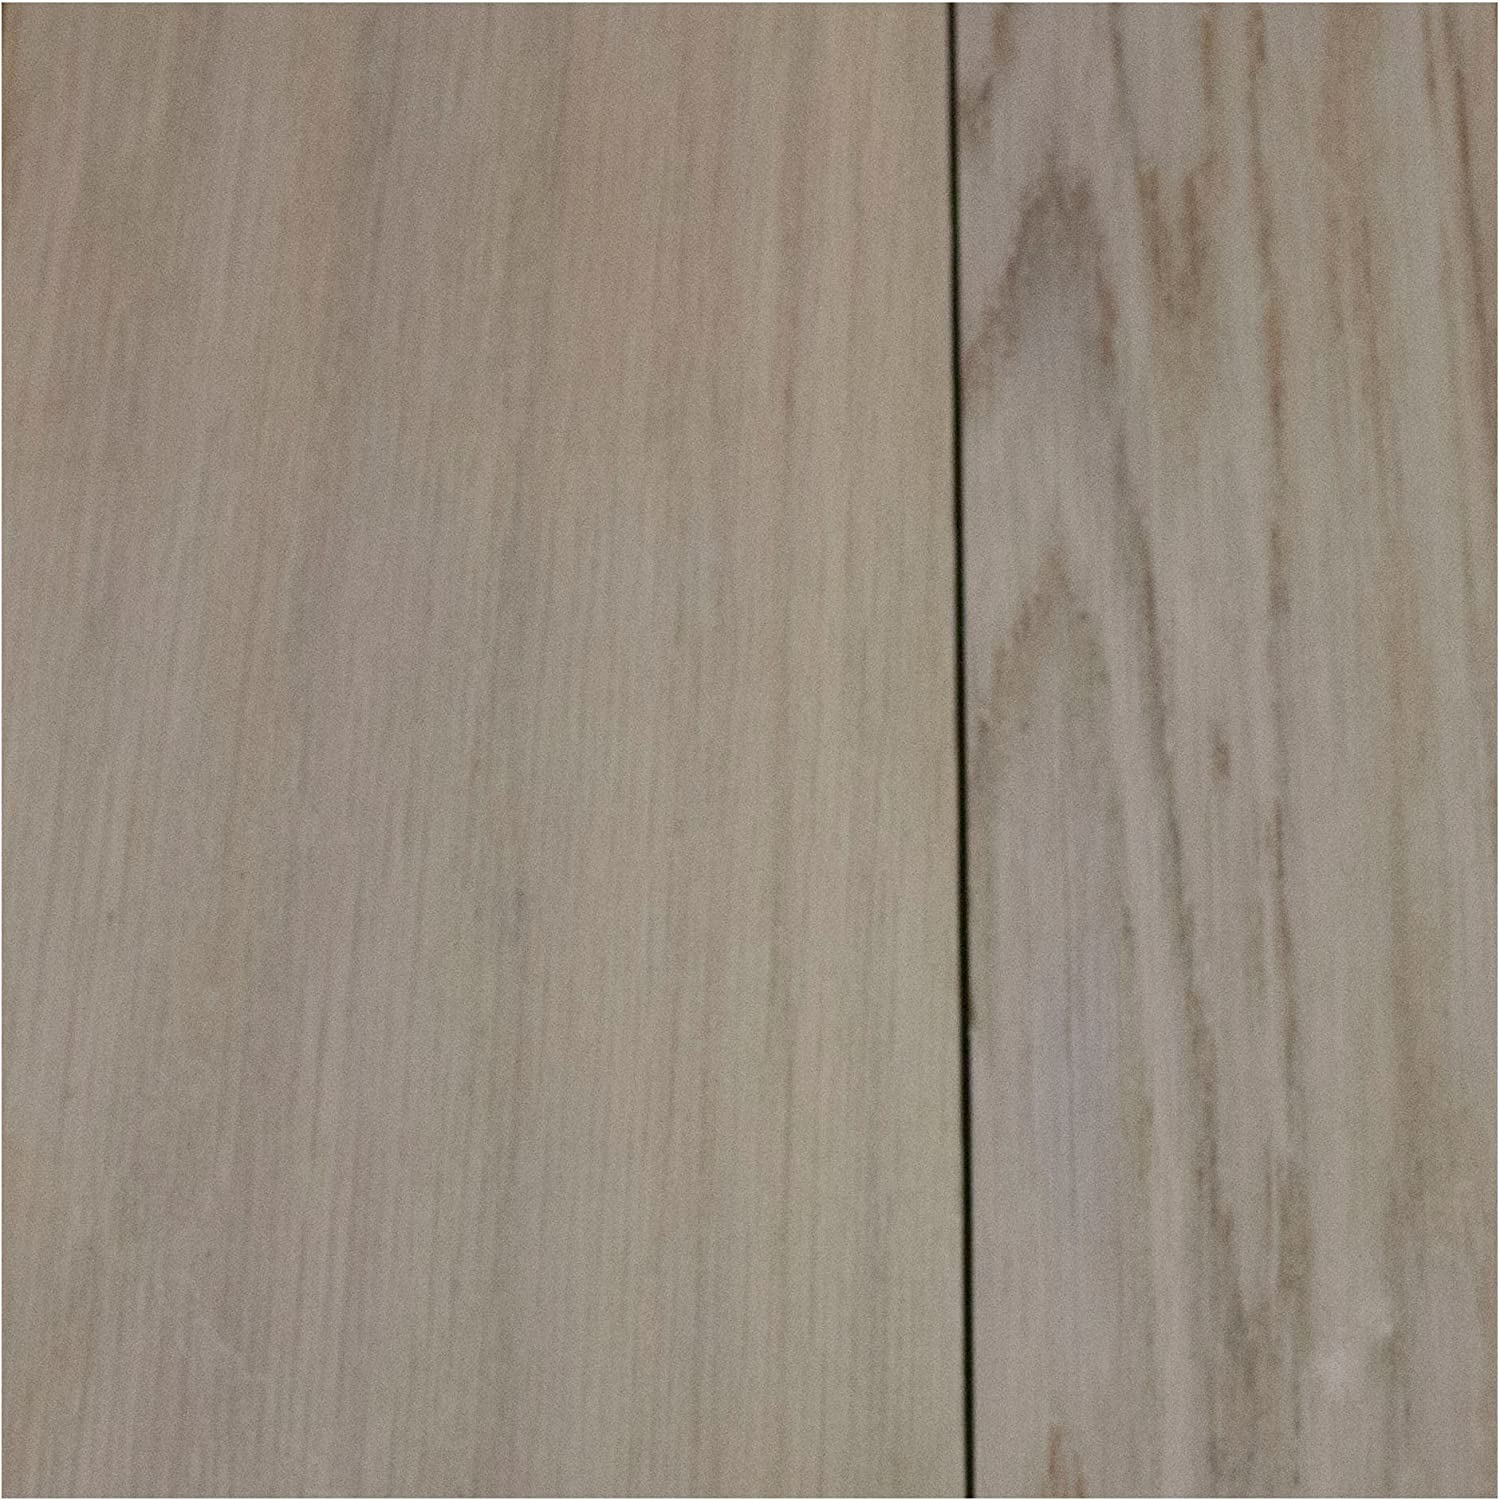 96 L Moldings Online Armstrong Mystic Taupe Collection Prime Harvest White Oak Stair Nose